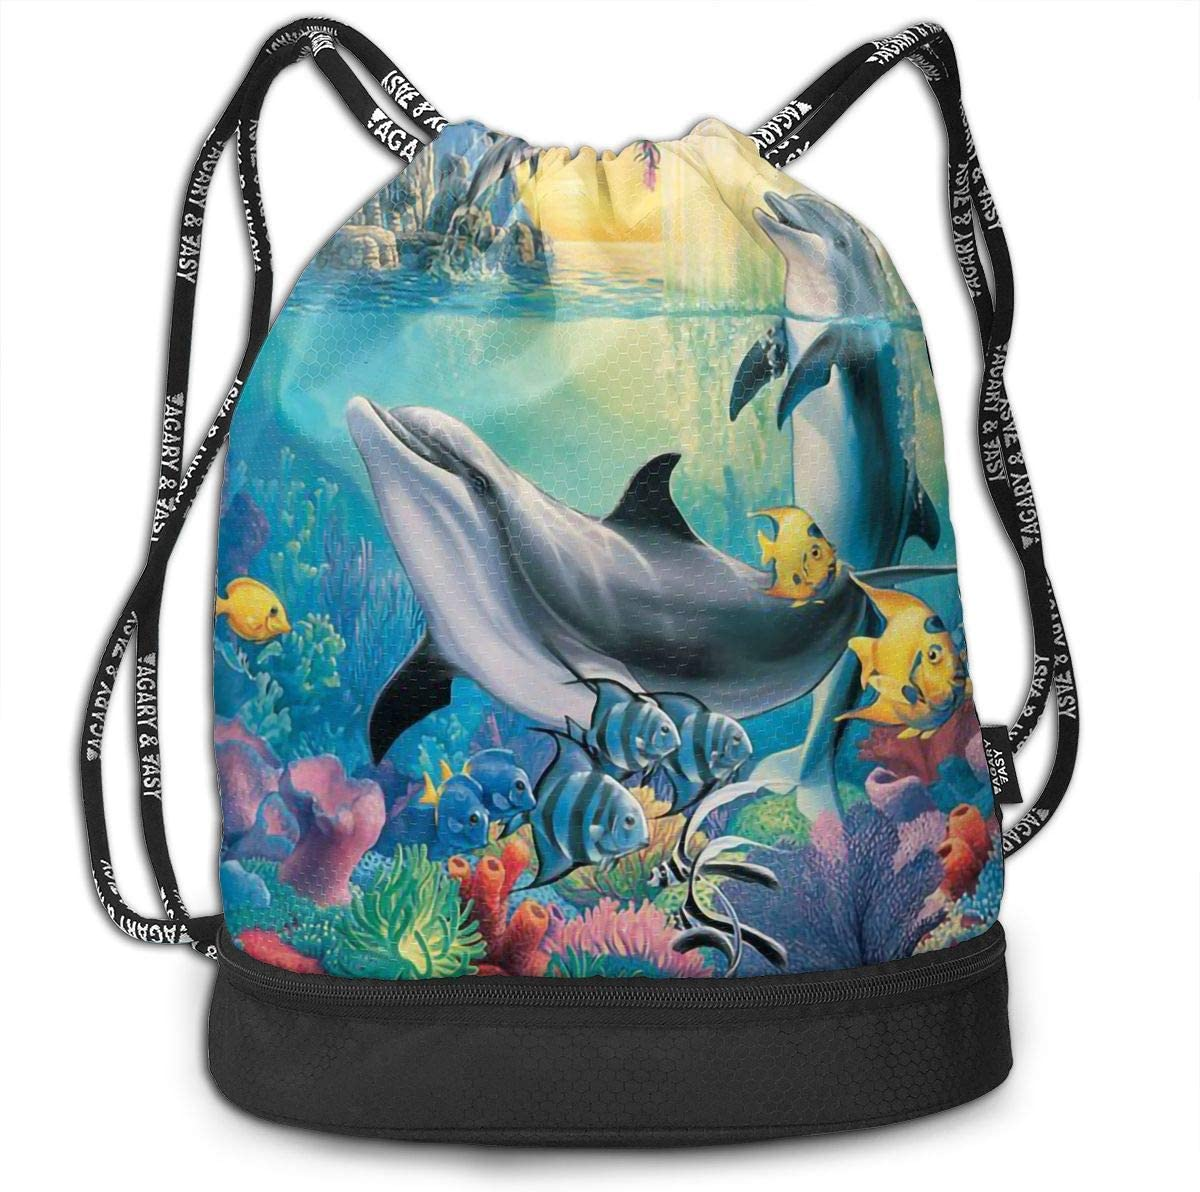 Drawstring Backpack Dolphins And Fish Shoulder Bags